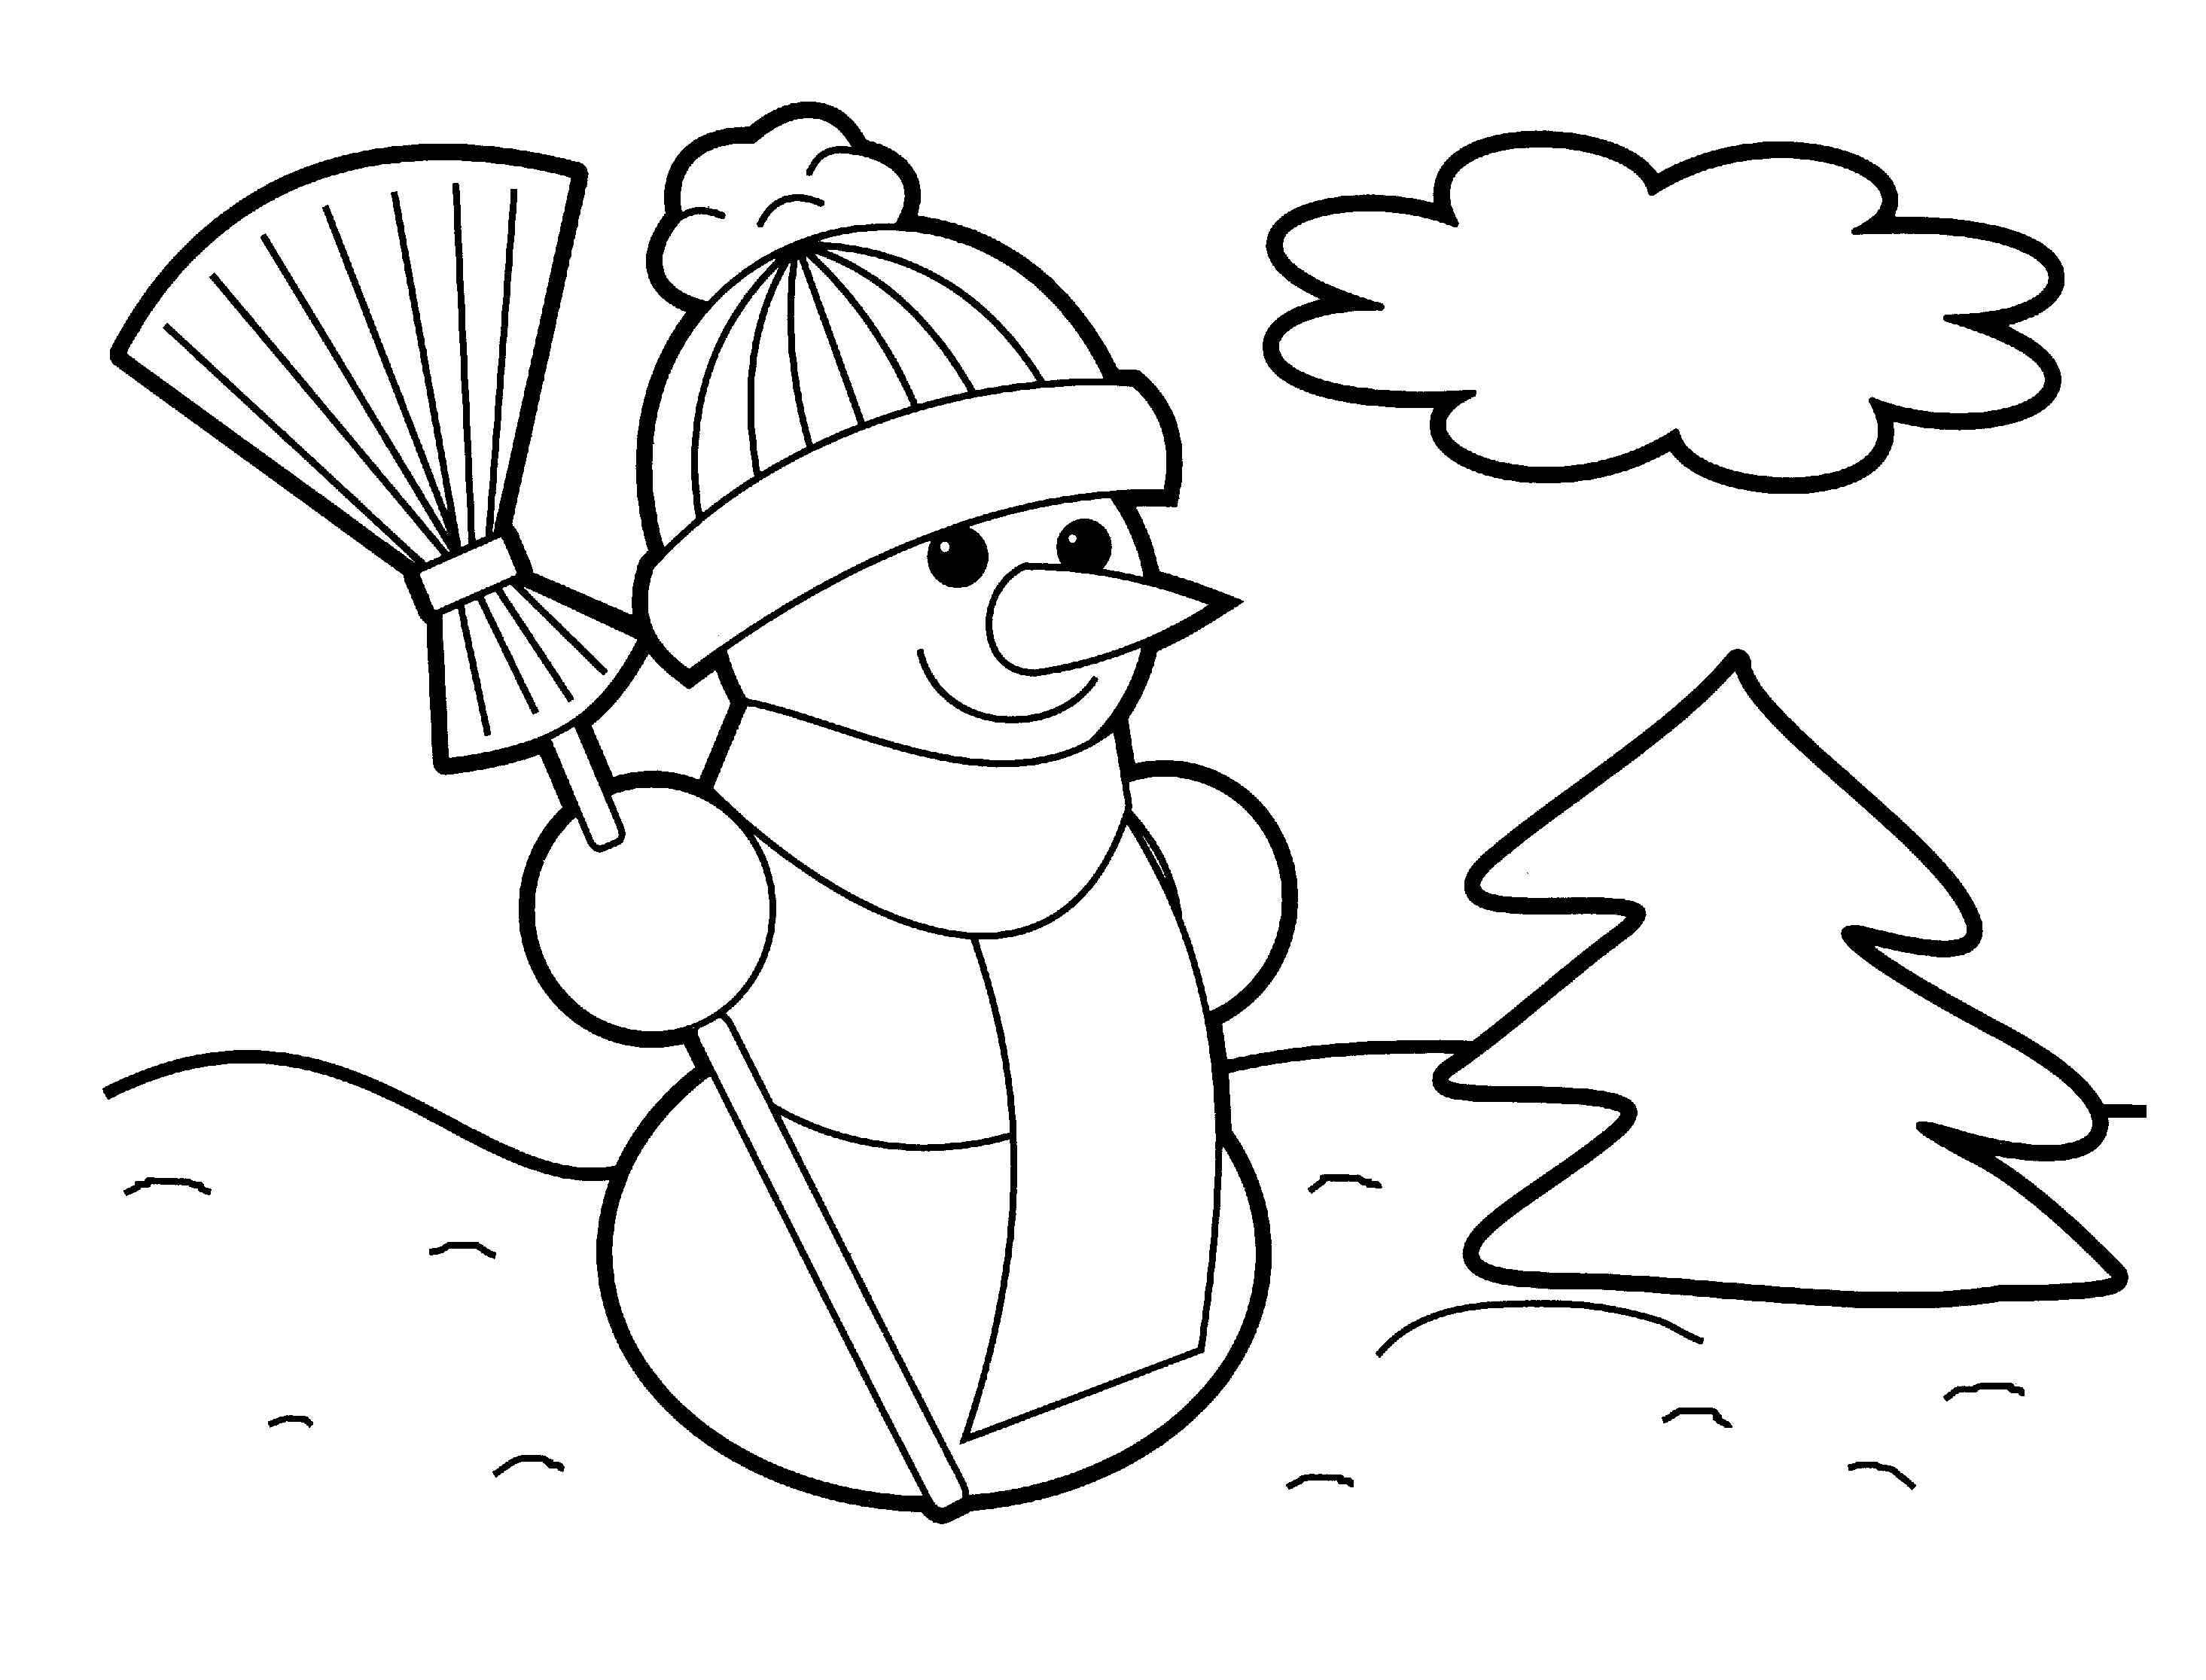 Coloring Pages To Print Free Printable Astronaut Coloring Pages Print Of An Suit For Adults